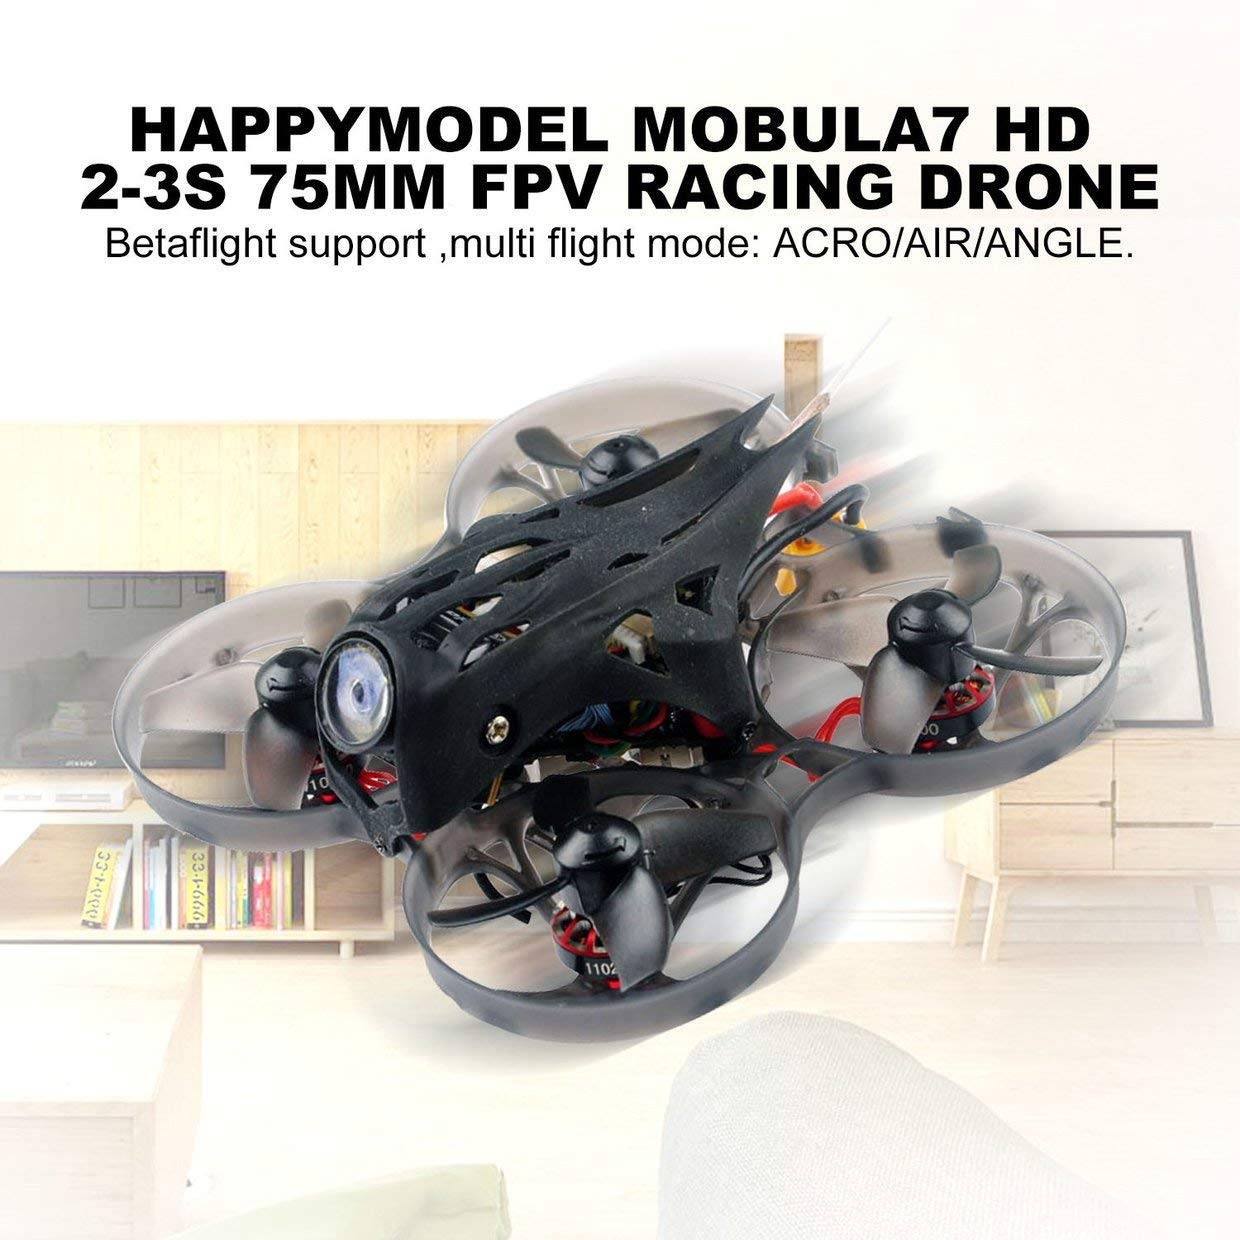 MXECO Happymodel Mobula7 HD 2-3S 75mm Crazybee F4 Pro Whoop FPV Racing Drone PNP BNF w  CADDX Turtle V2 HD Camera - Without Receiver